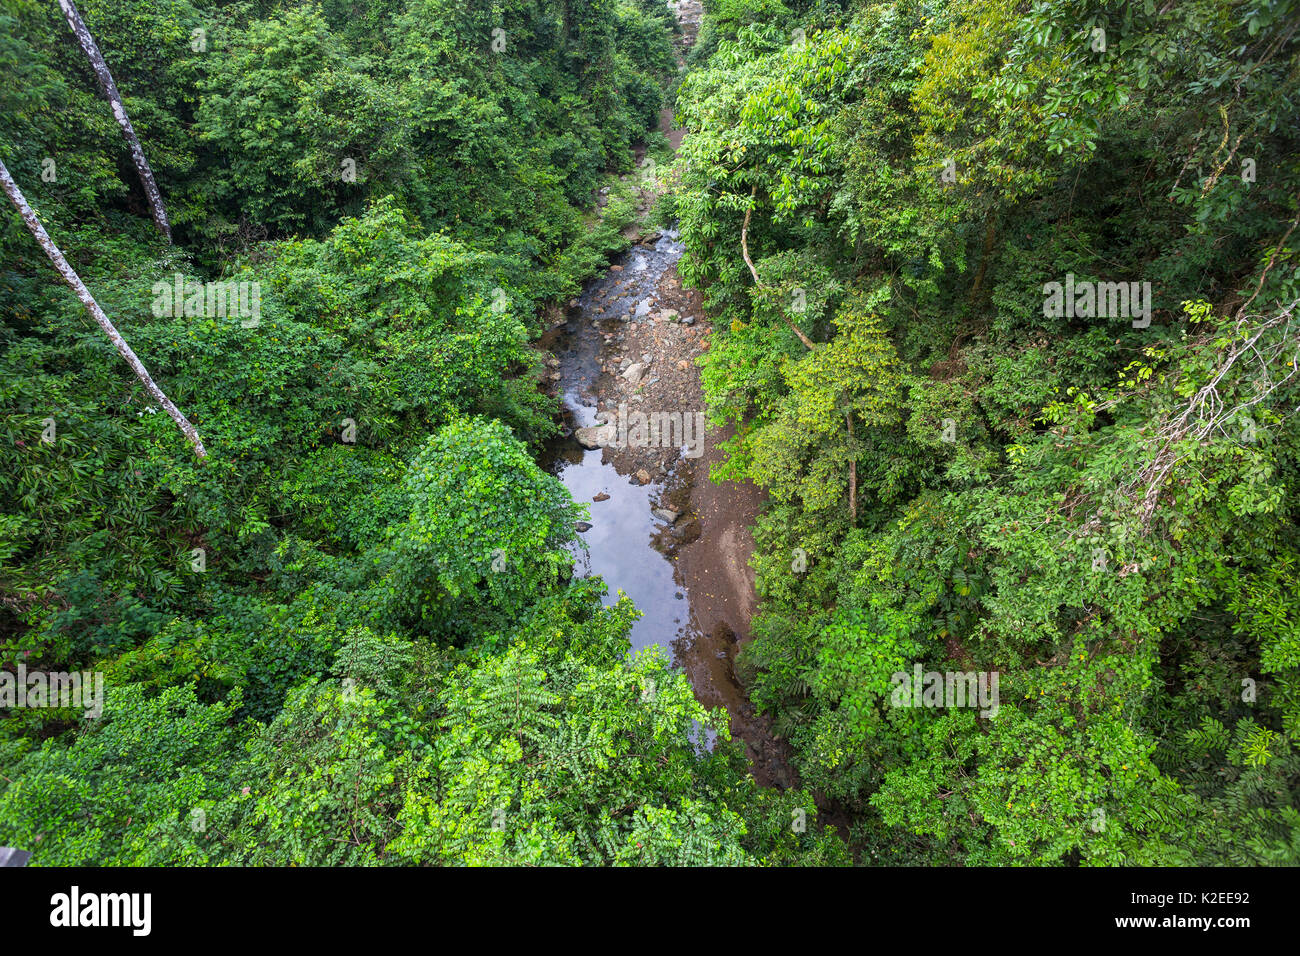 Looking down on dipterocarp forest canopy in Danum Conservation Area, Sabah, Borneo, Malaysia. - Stock Image